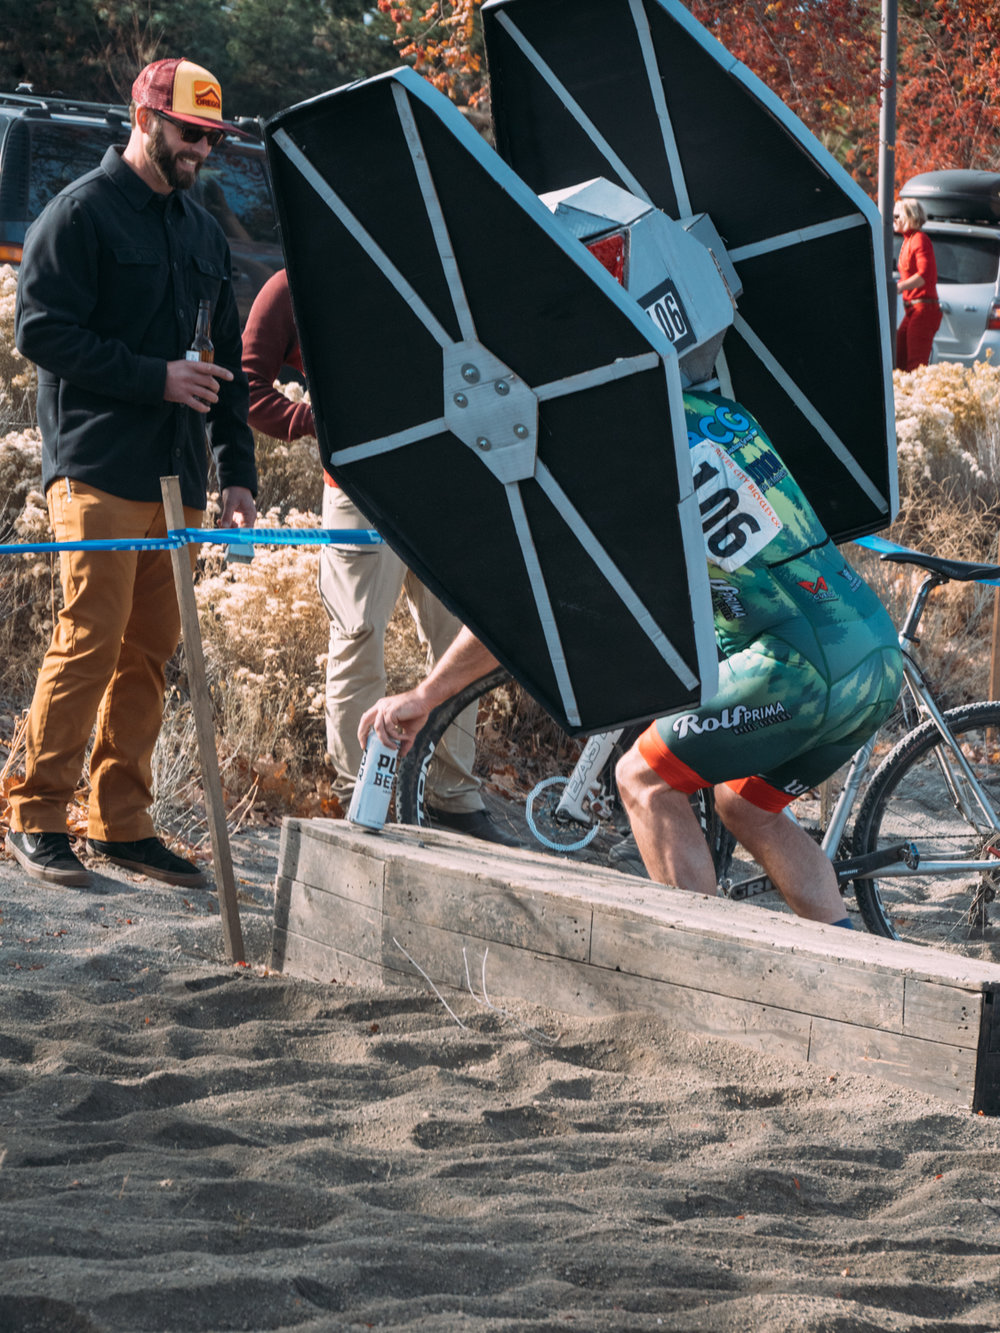 Cyclocross18_CCCX-Bend-Day2-37-fransencomesalive-2.jpg